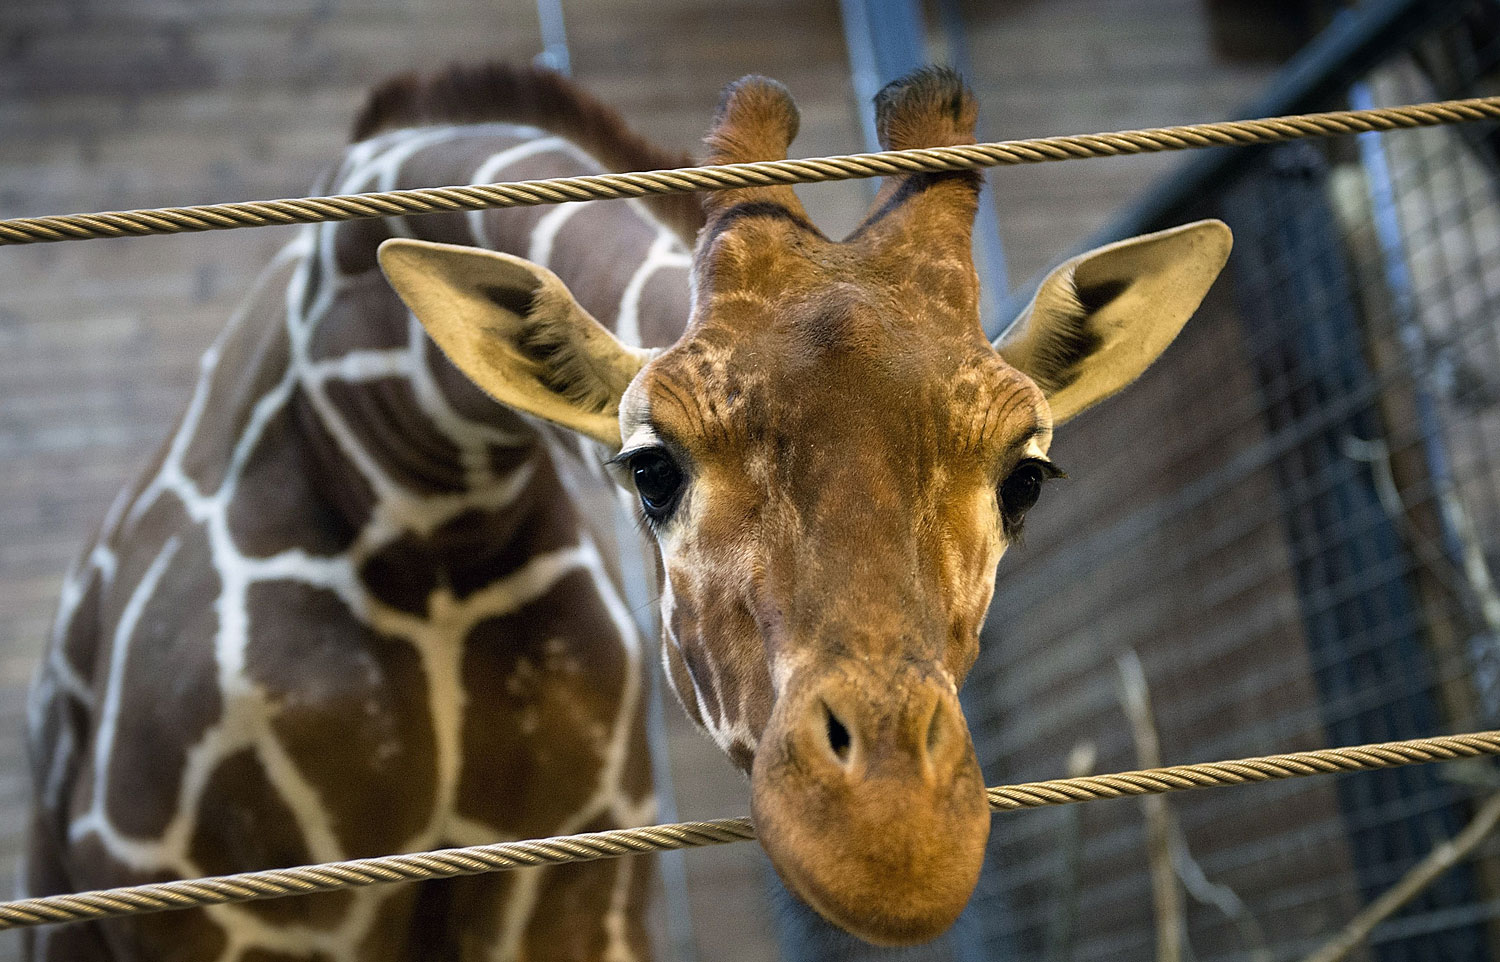 Marius the giraffe at the Copenhagen Zoo on Feb. 7, 2014, two days before he was shot dead then autopsied in the presence of the zoo's visitors, despite an online petition to save him signed by thousands of animal lovers